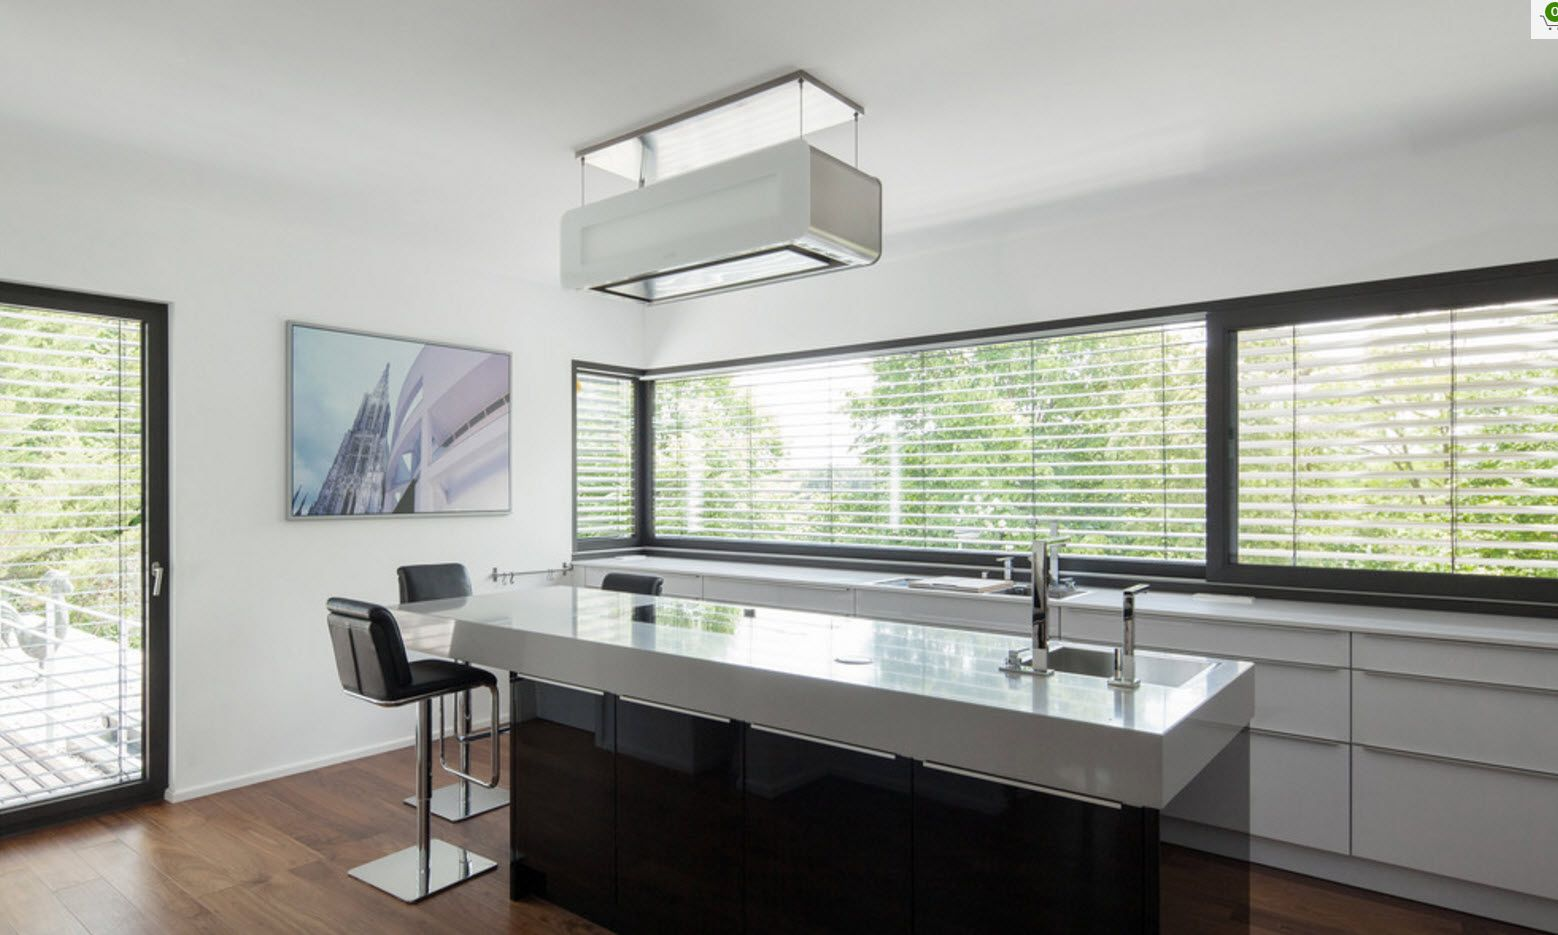 Panoramic long window and the kitchen island with the stone sink